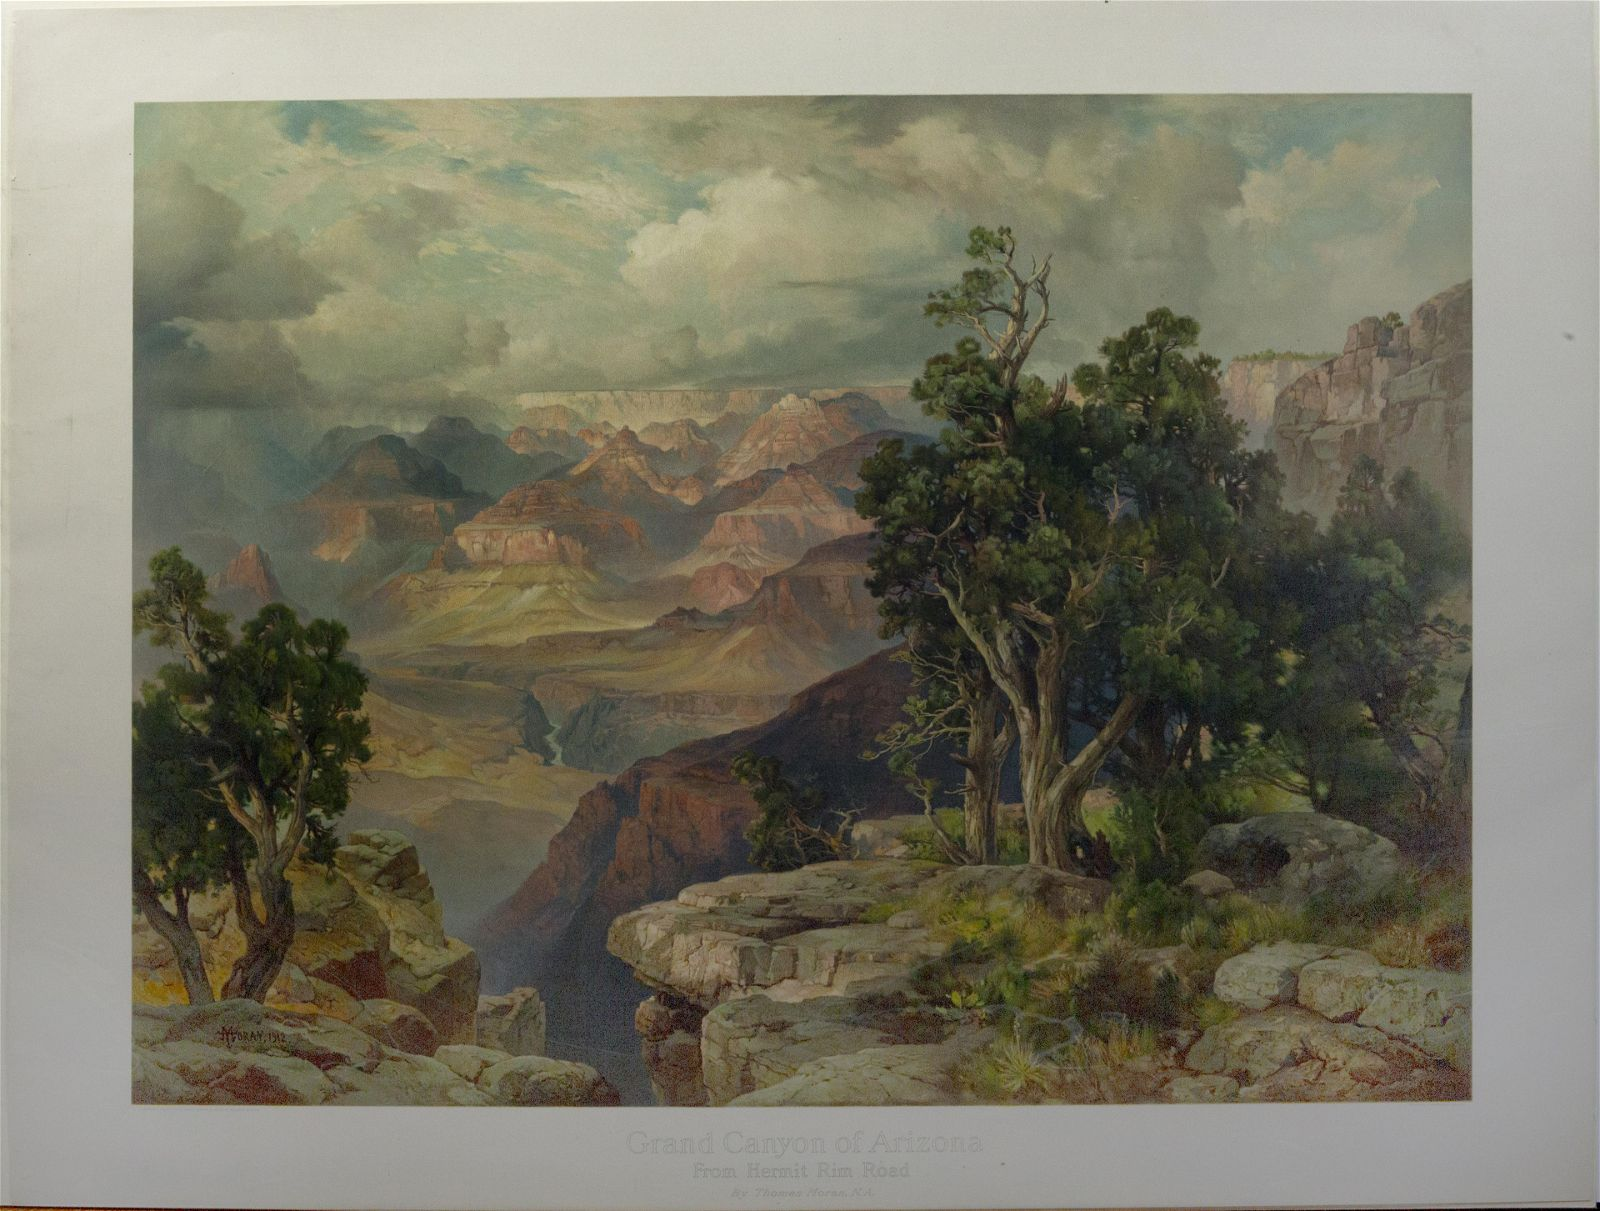 Moran View of the Grand Canyon, 1912